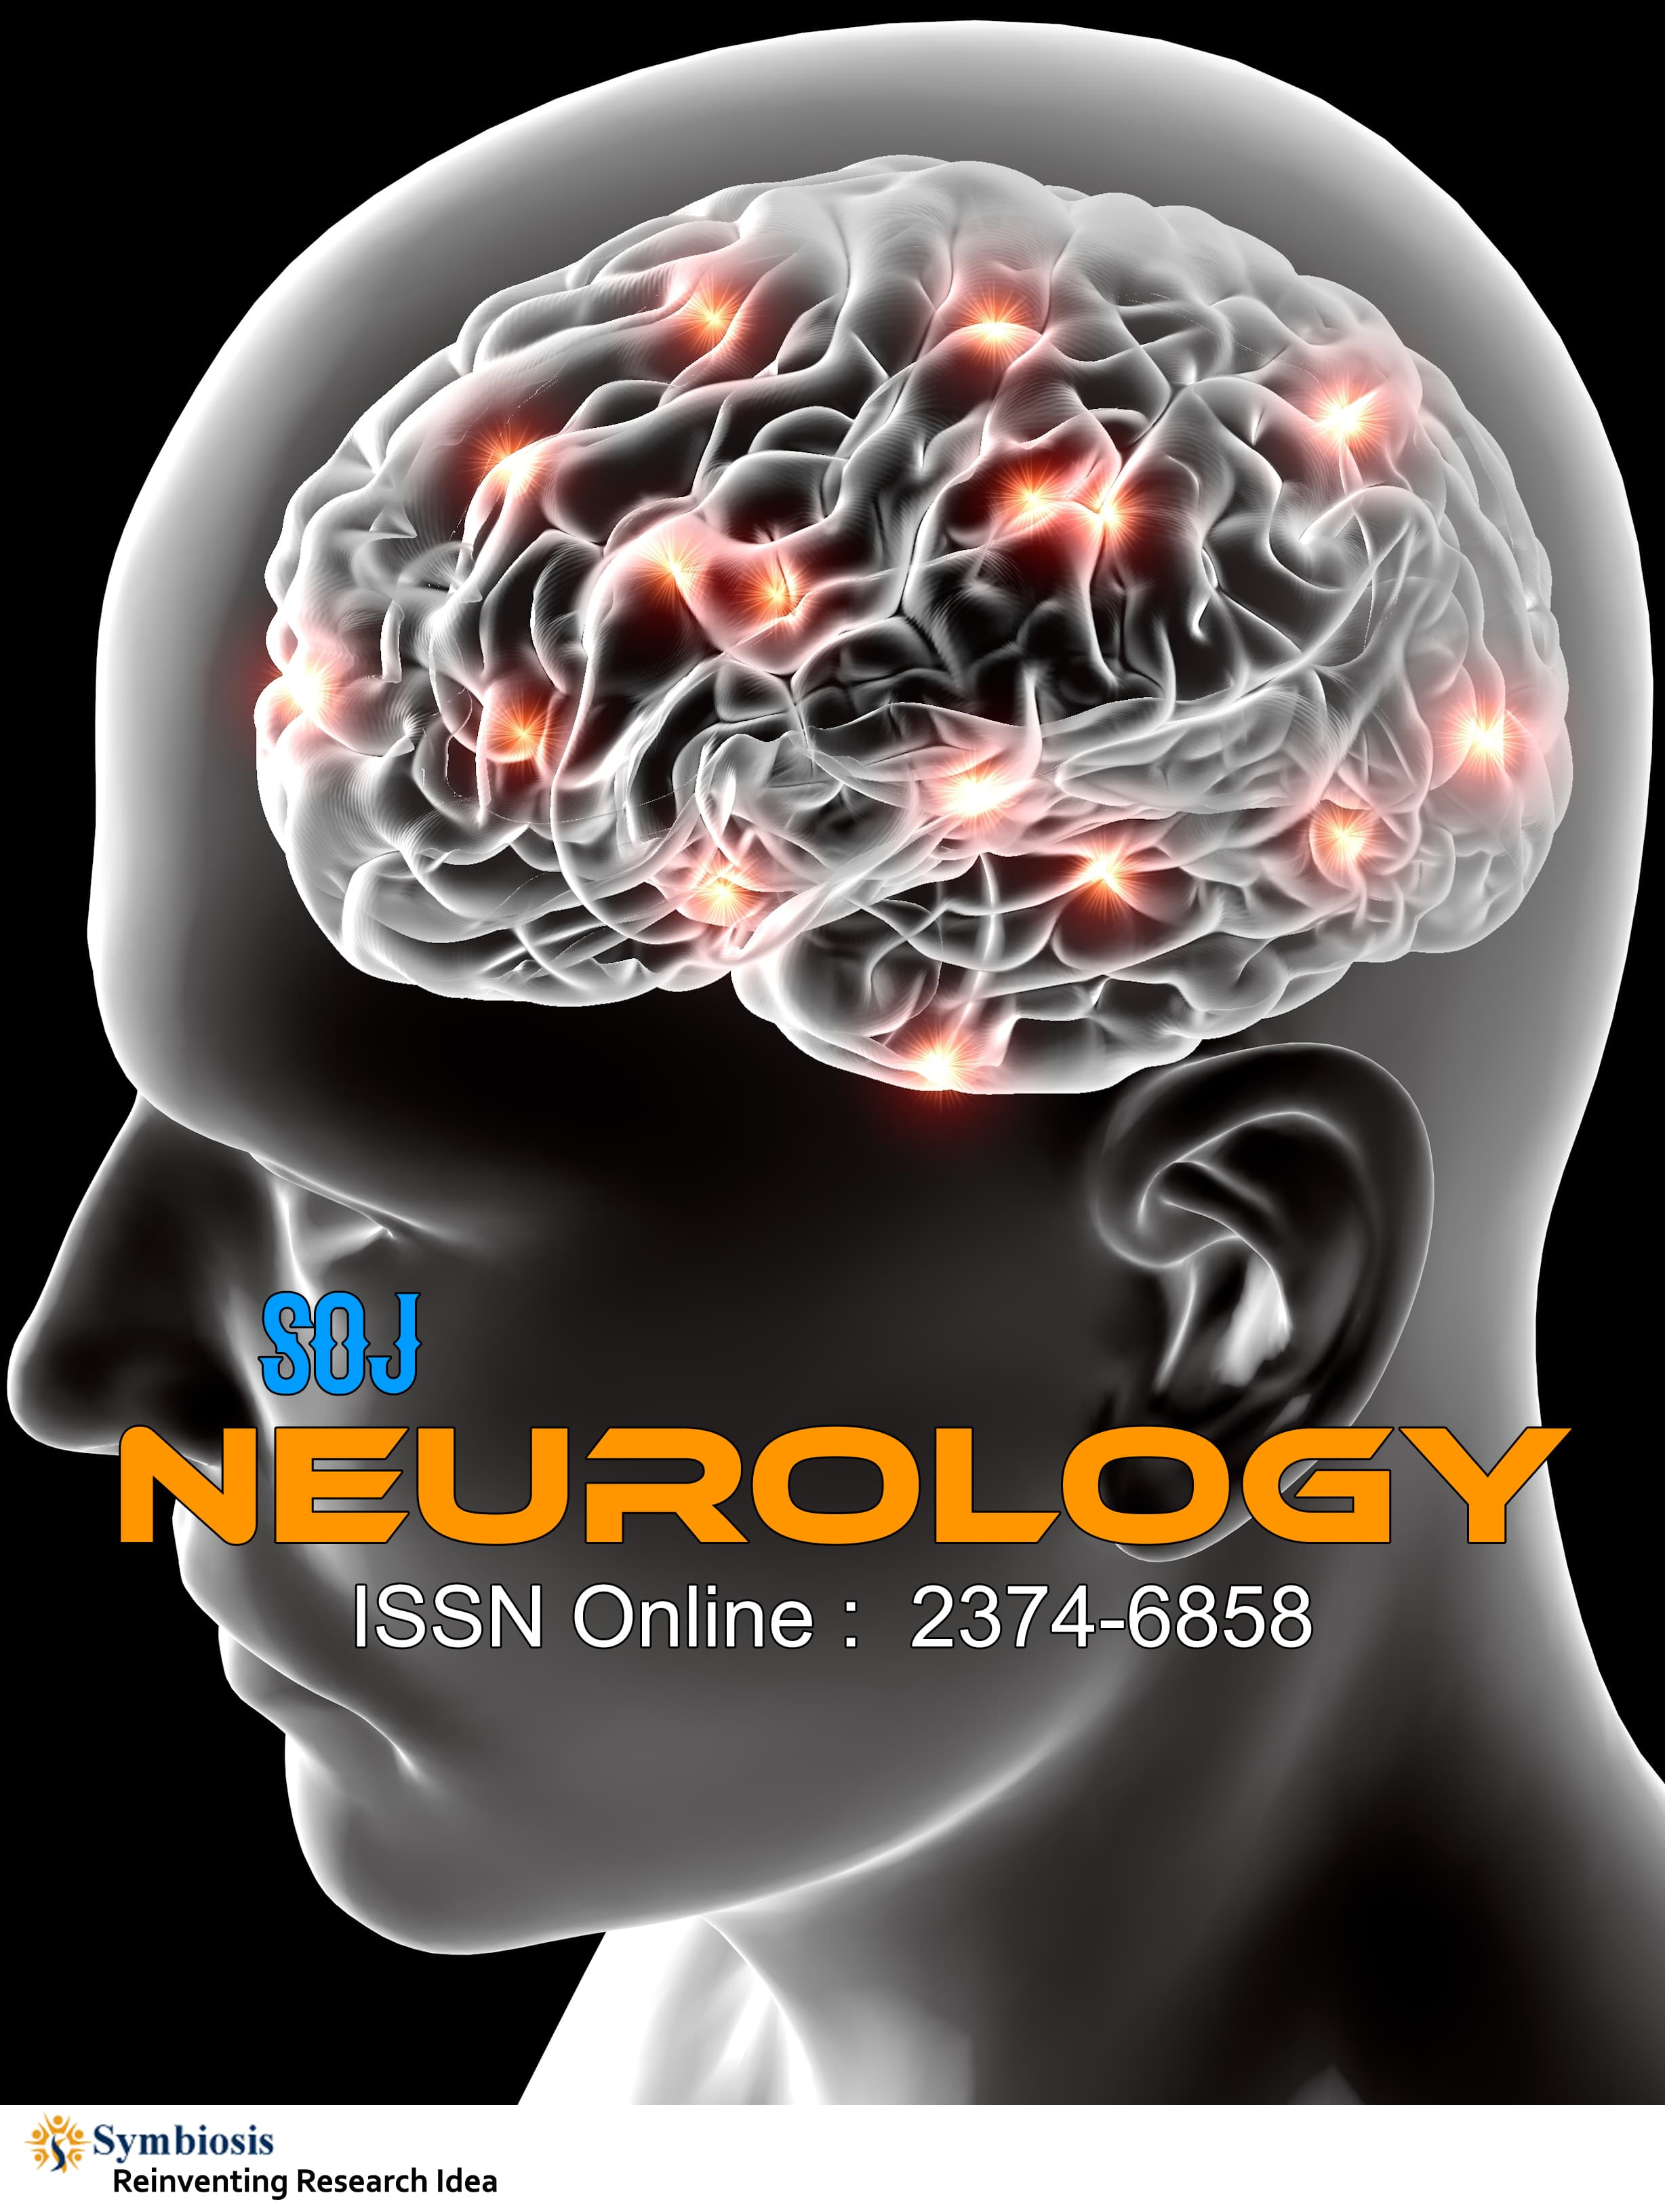 SOJ Neurology